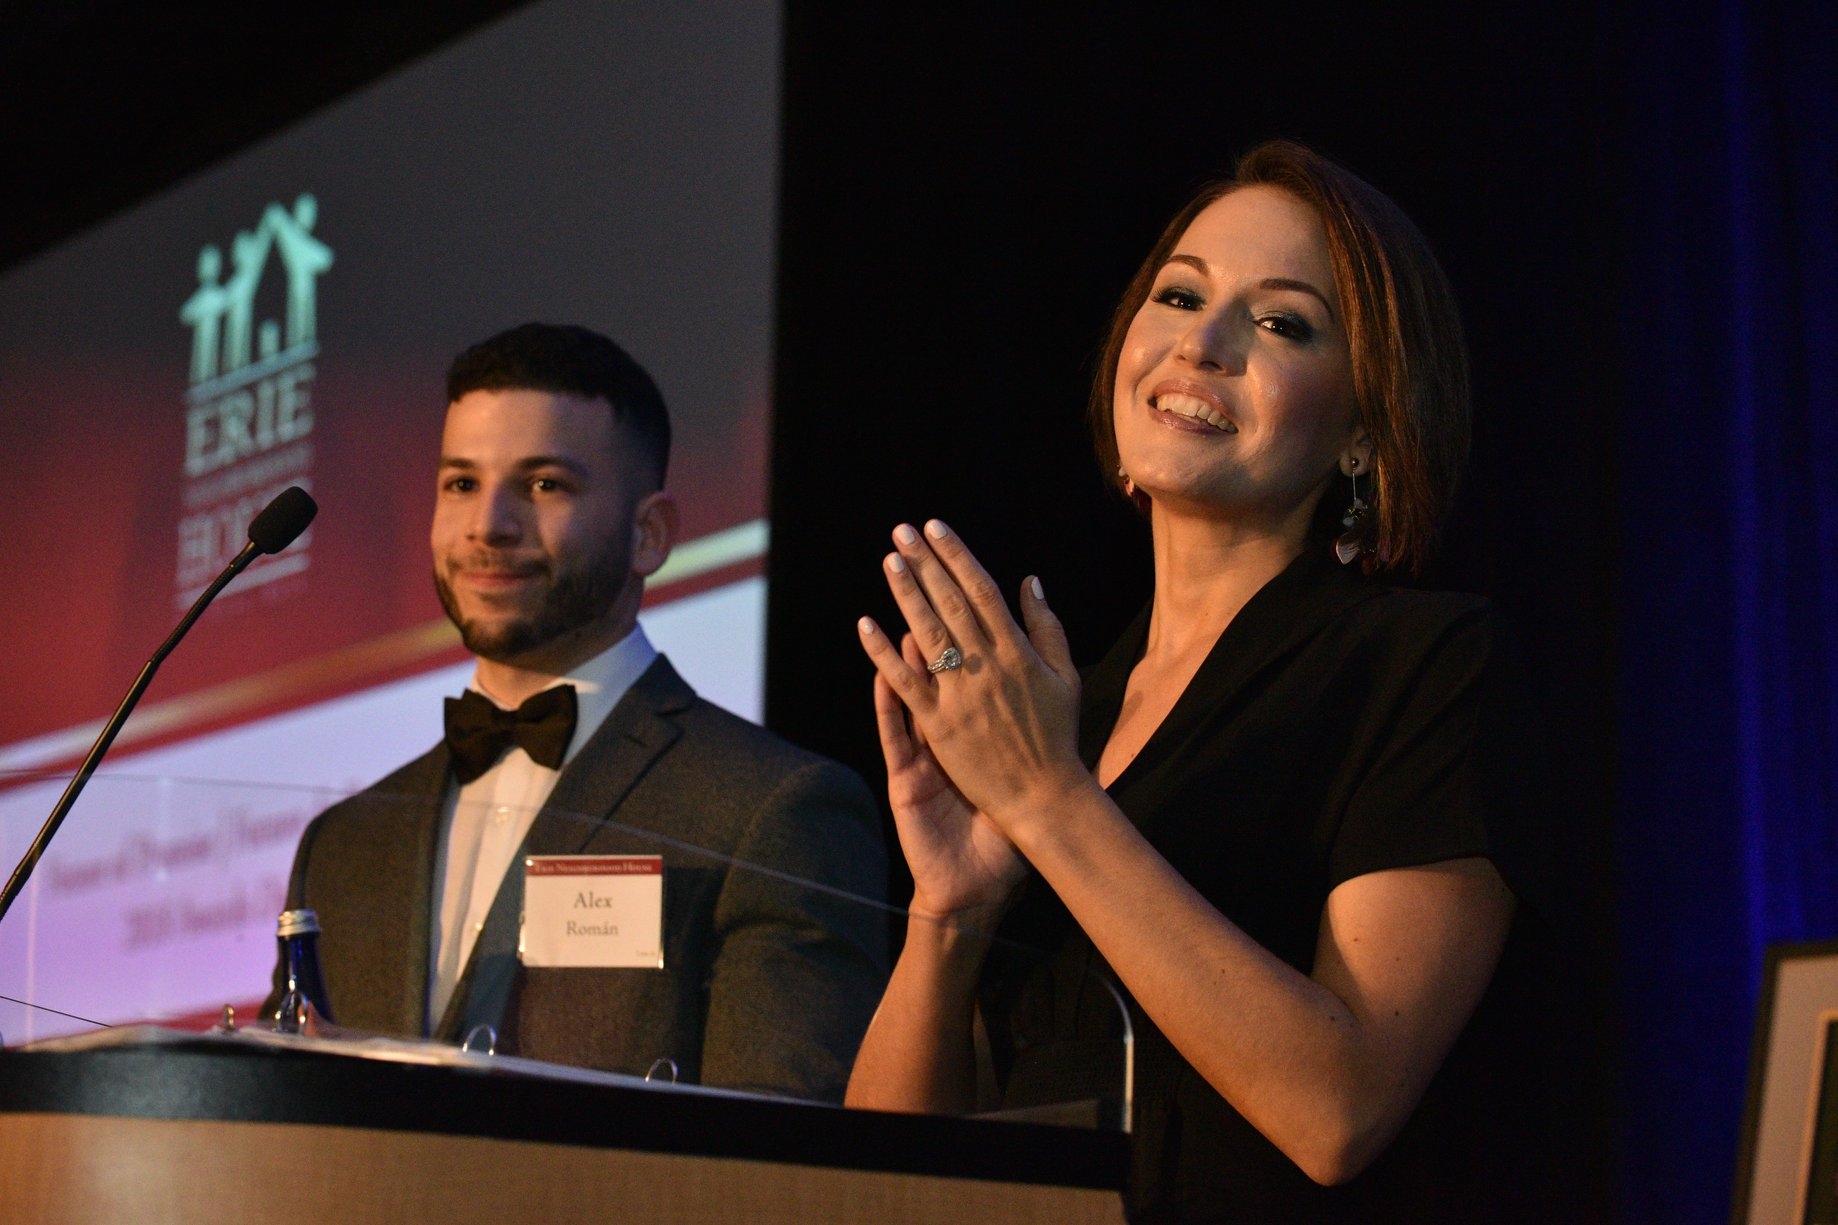 Alex Roman and Executive Director Kirstin Chernowsky at the Future of Promise Awards Dinner.